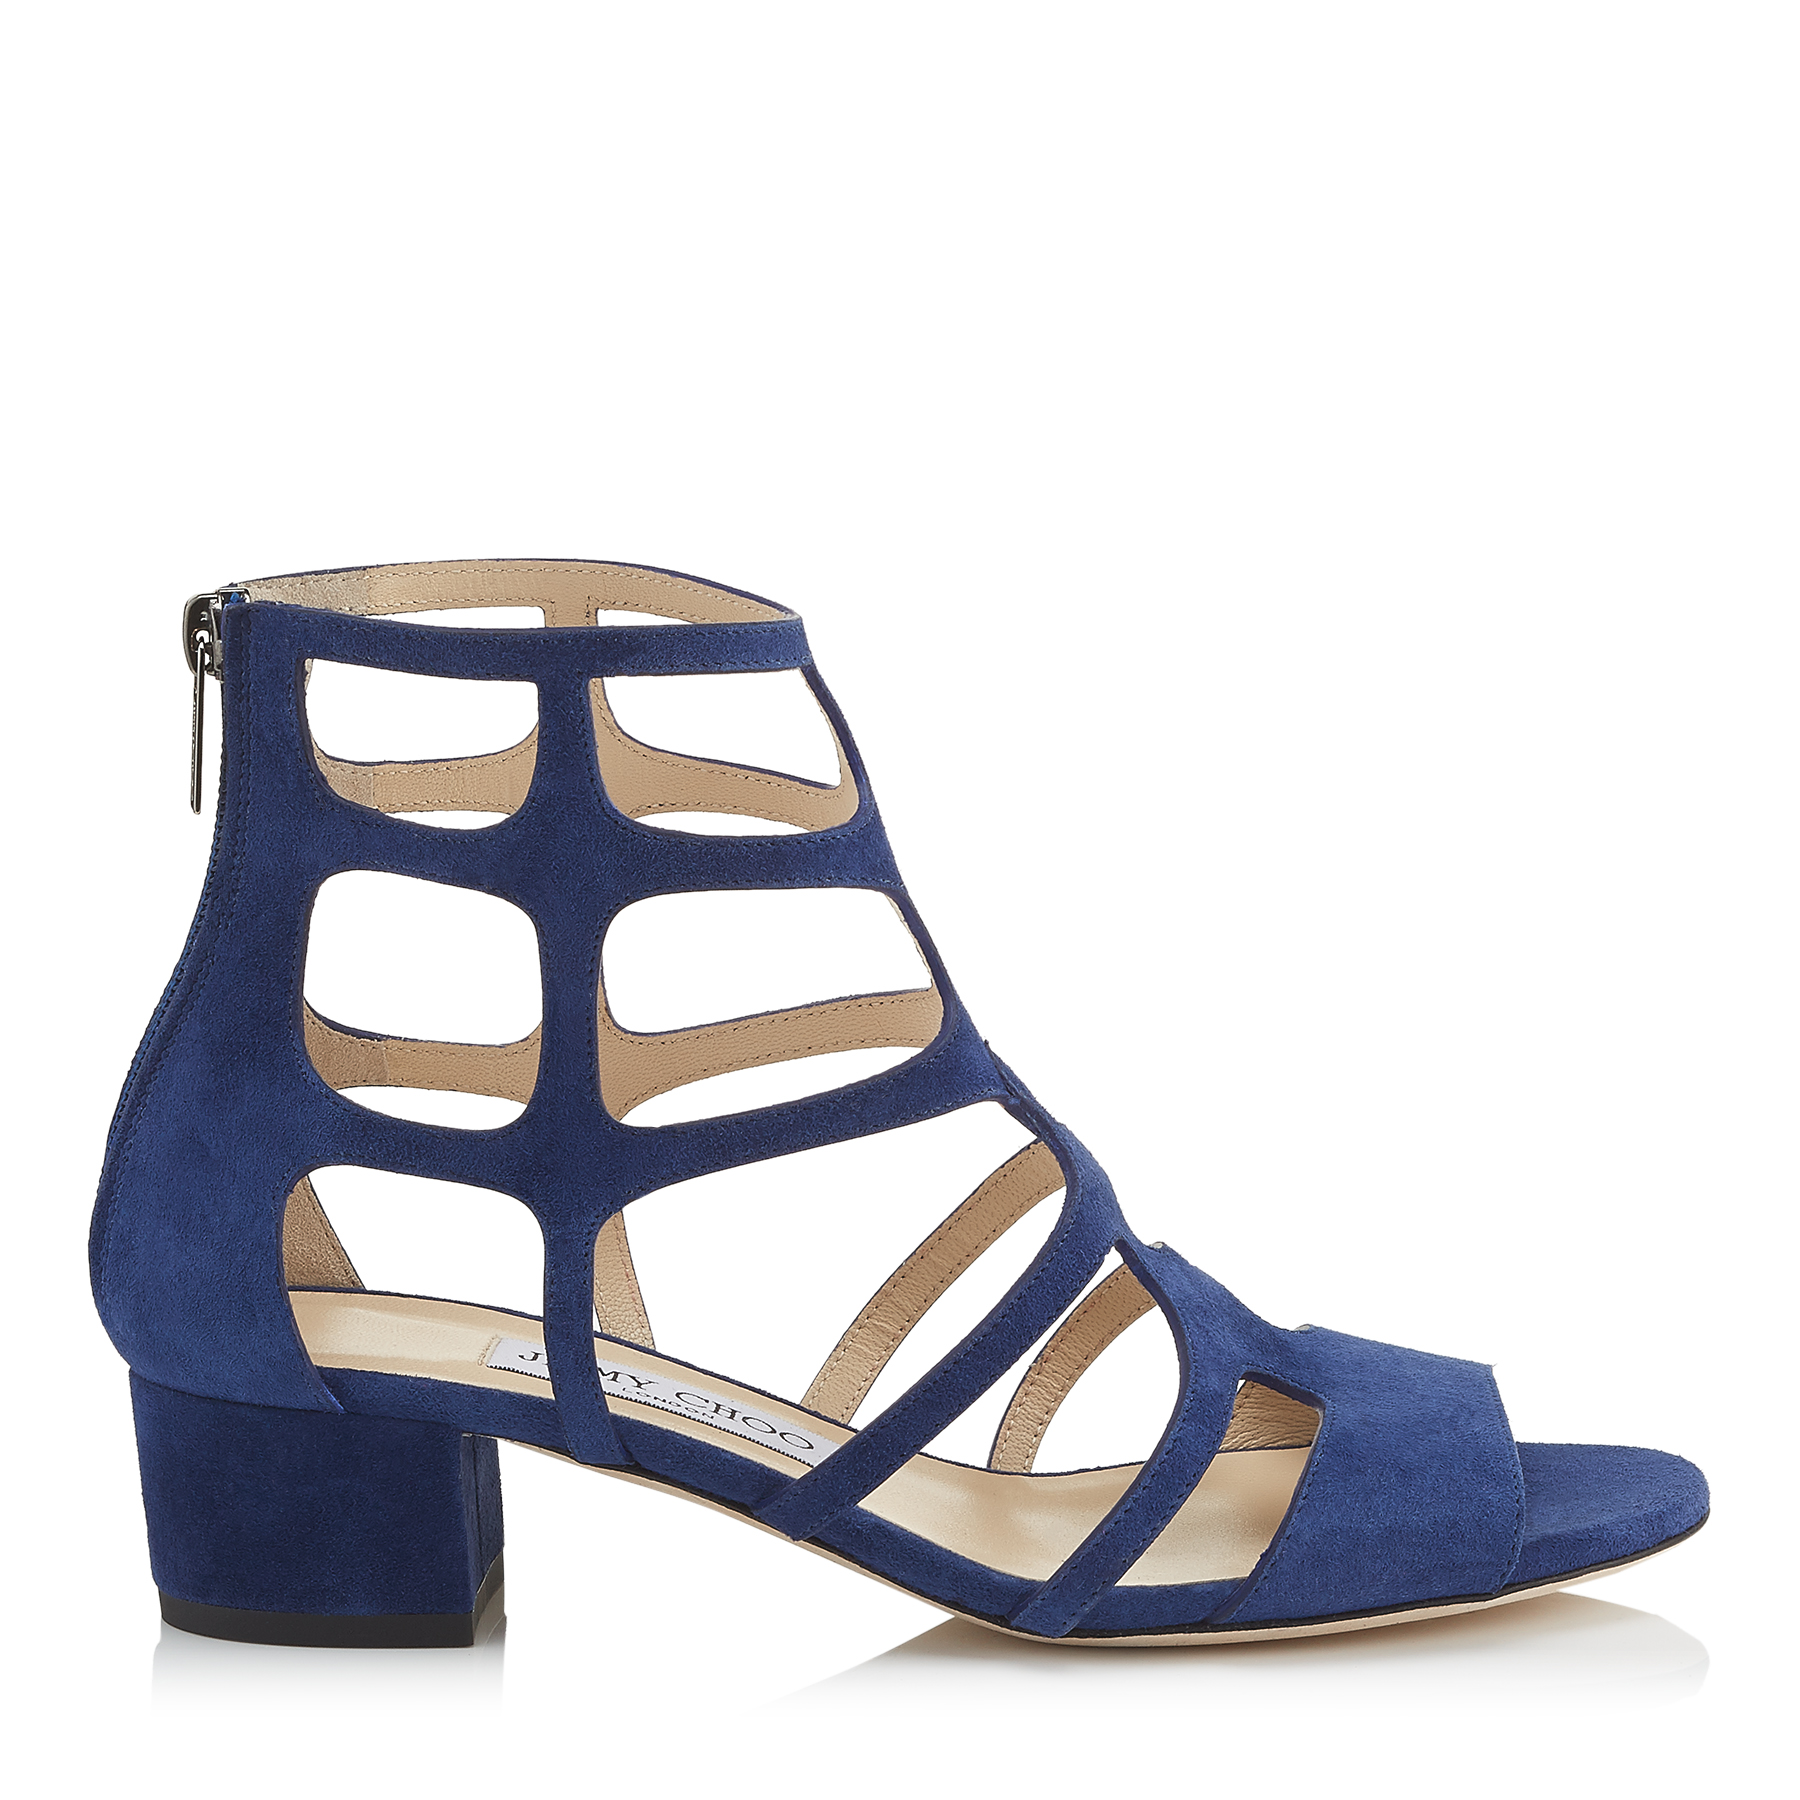 REN 35 Steel Blue Suede Sandals by Jimmy Choo